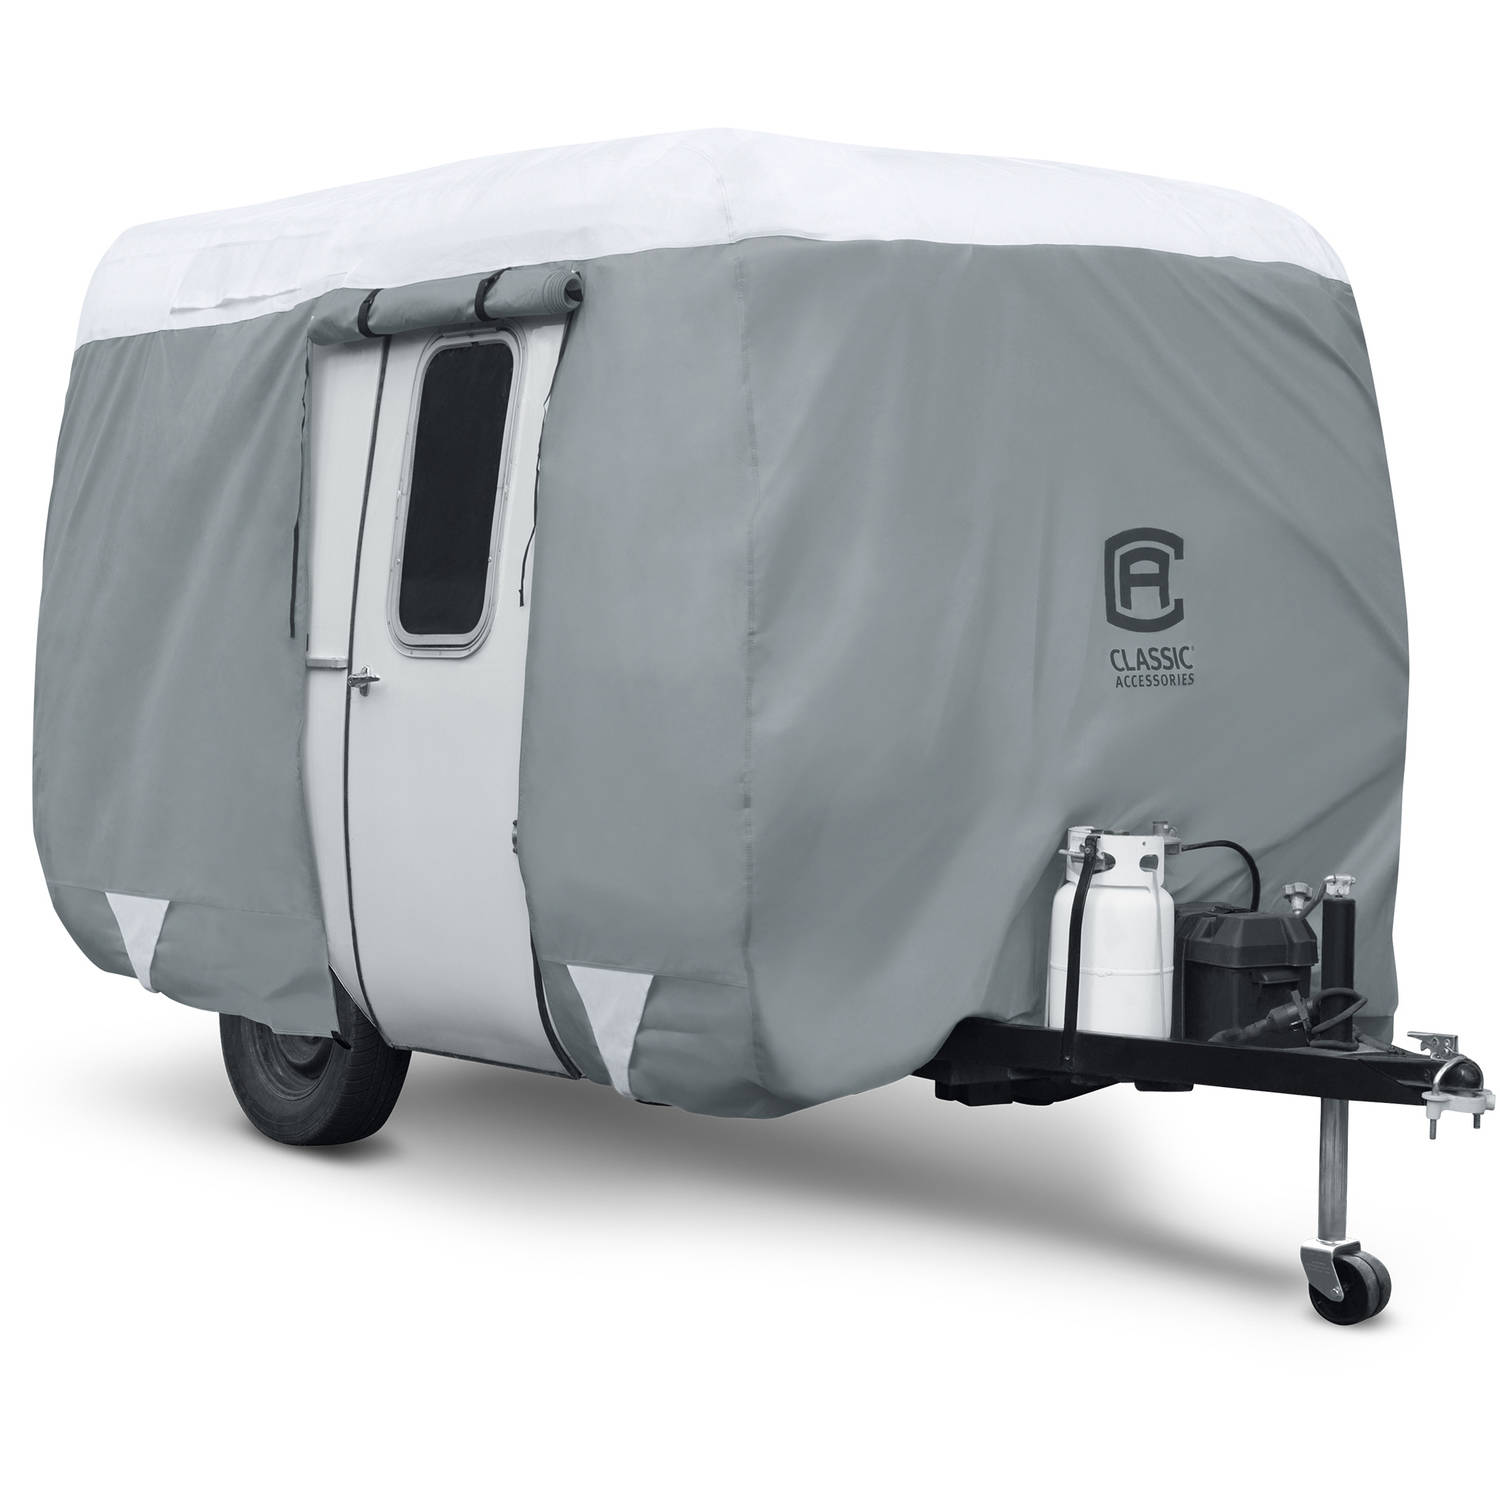 Classic Accessories PolyPRO 3 Molded Fiberglass Travel Trailer RV Cover, Fits 8' - 10' Trailers